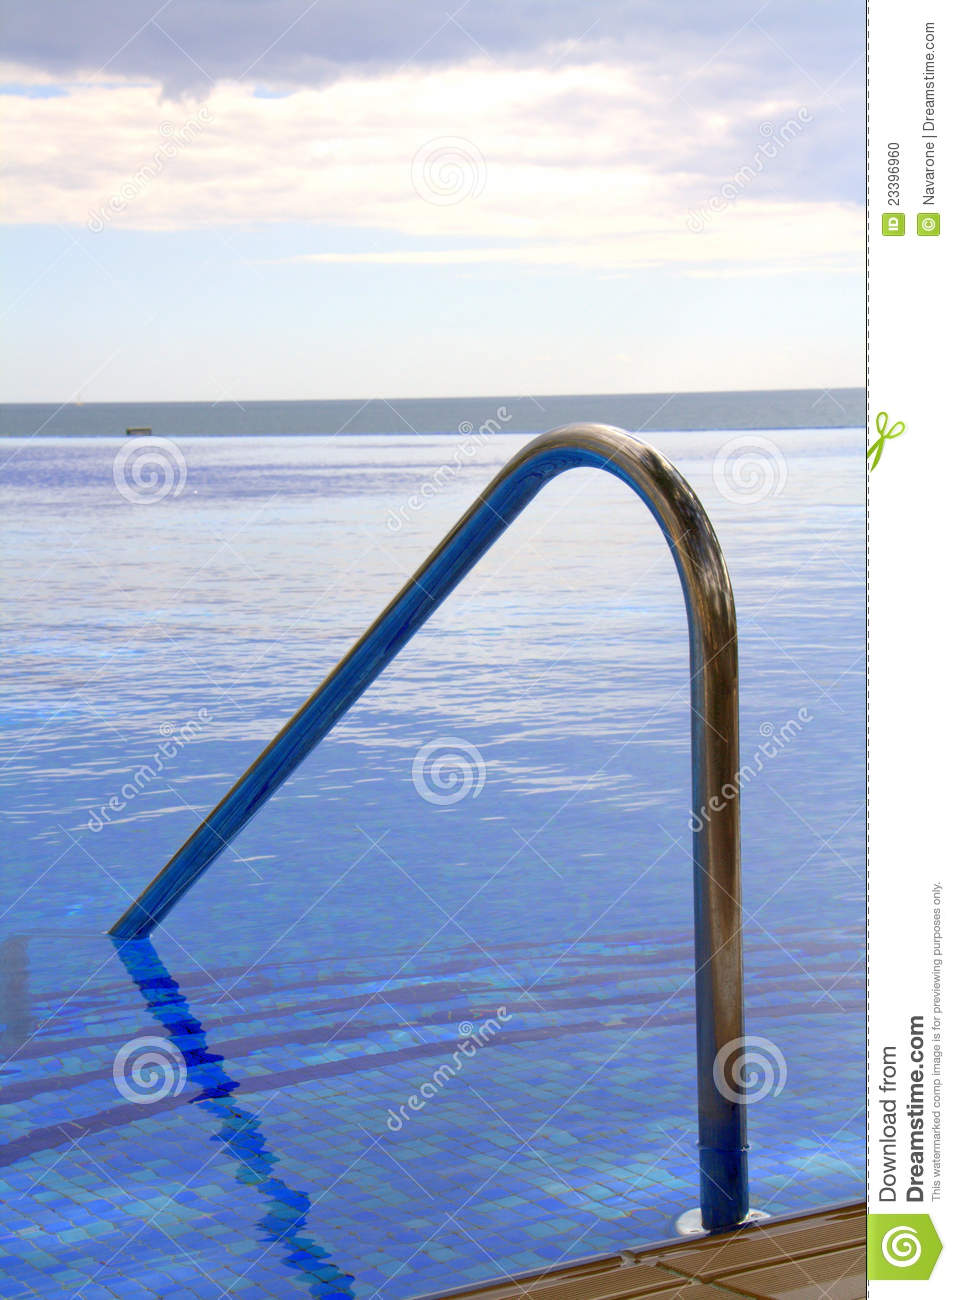 Swimming Pool Step Handrail : Pool steps and handrail stock photo image of oceanfront